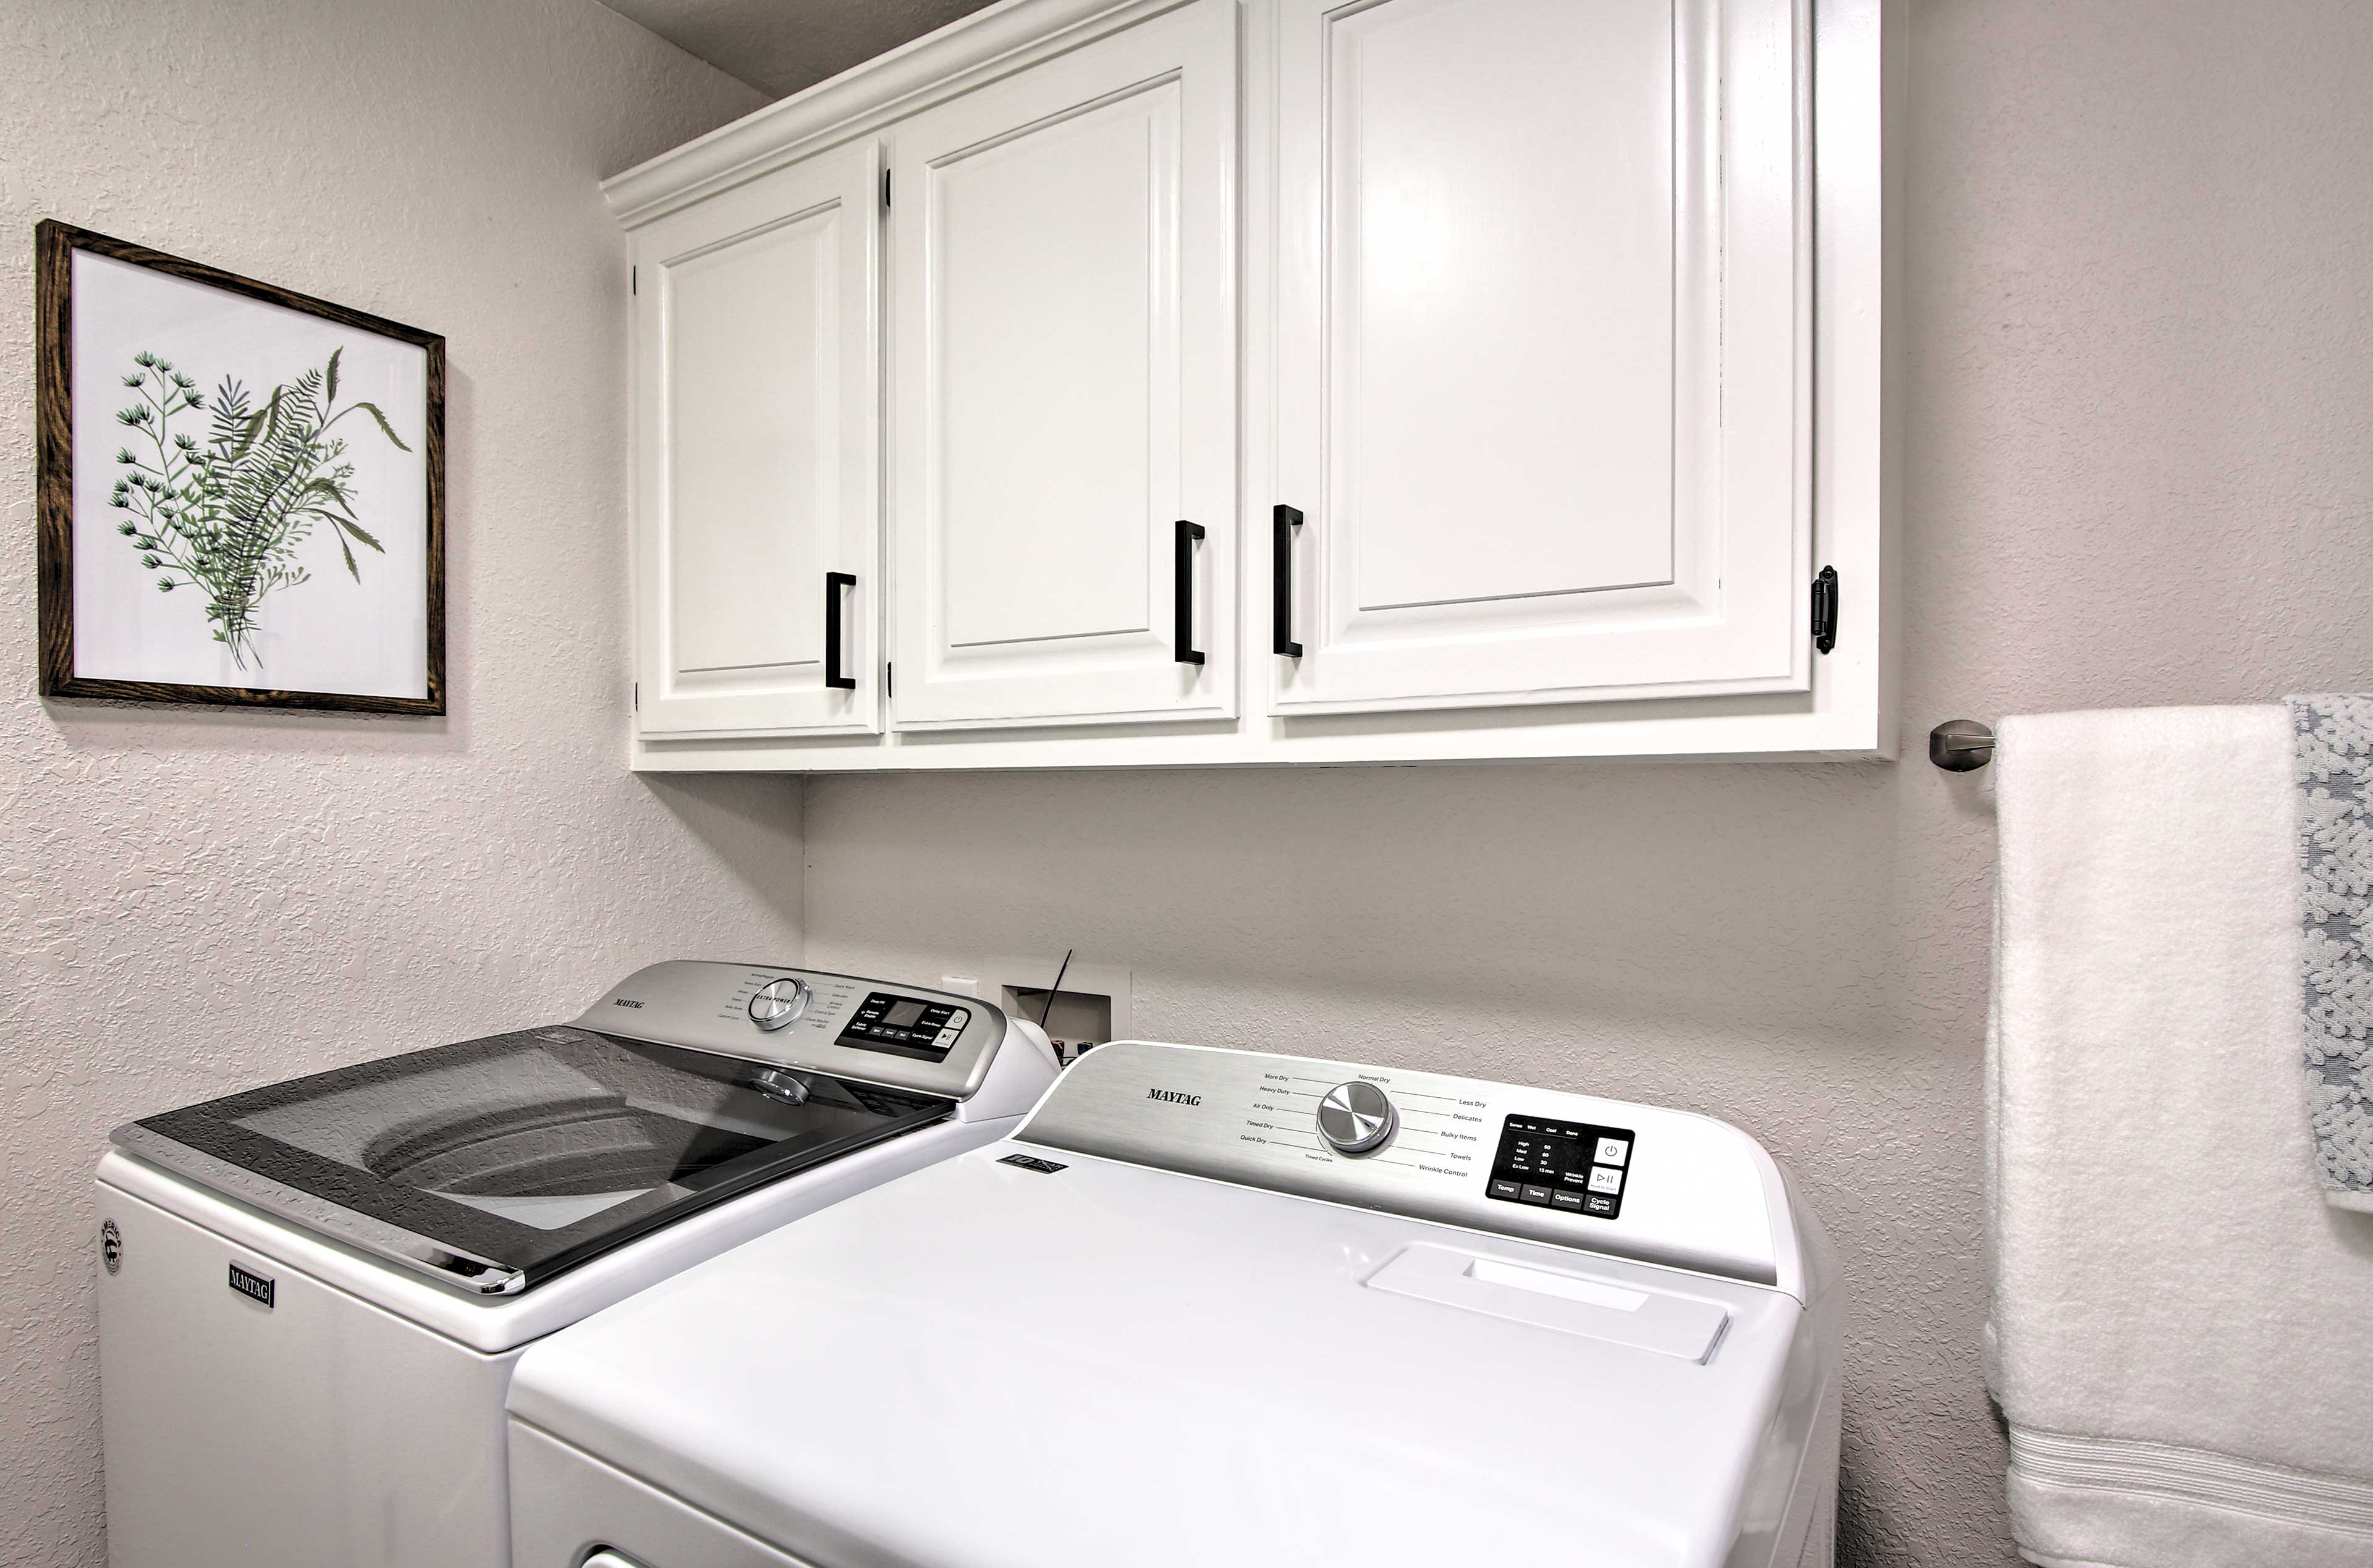 In-Unit Washer & Dryer   Located in Bathroom